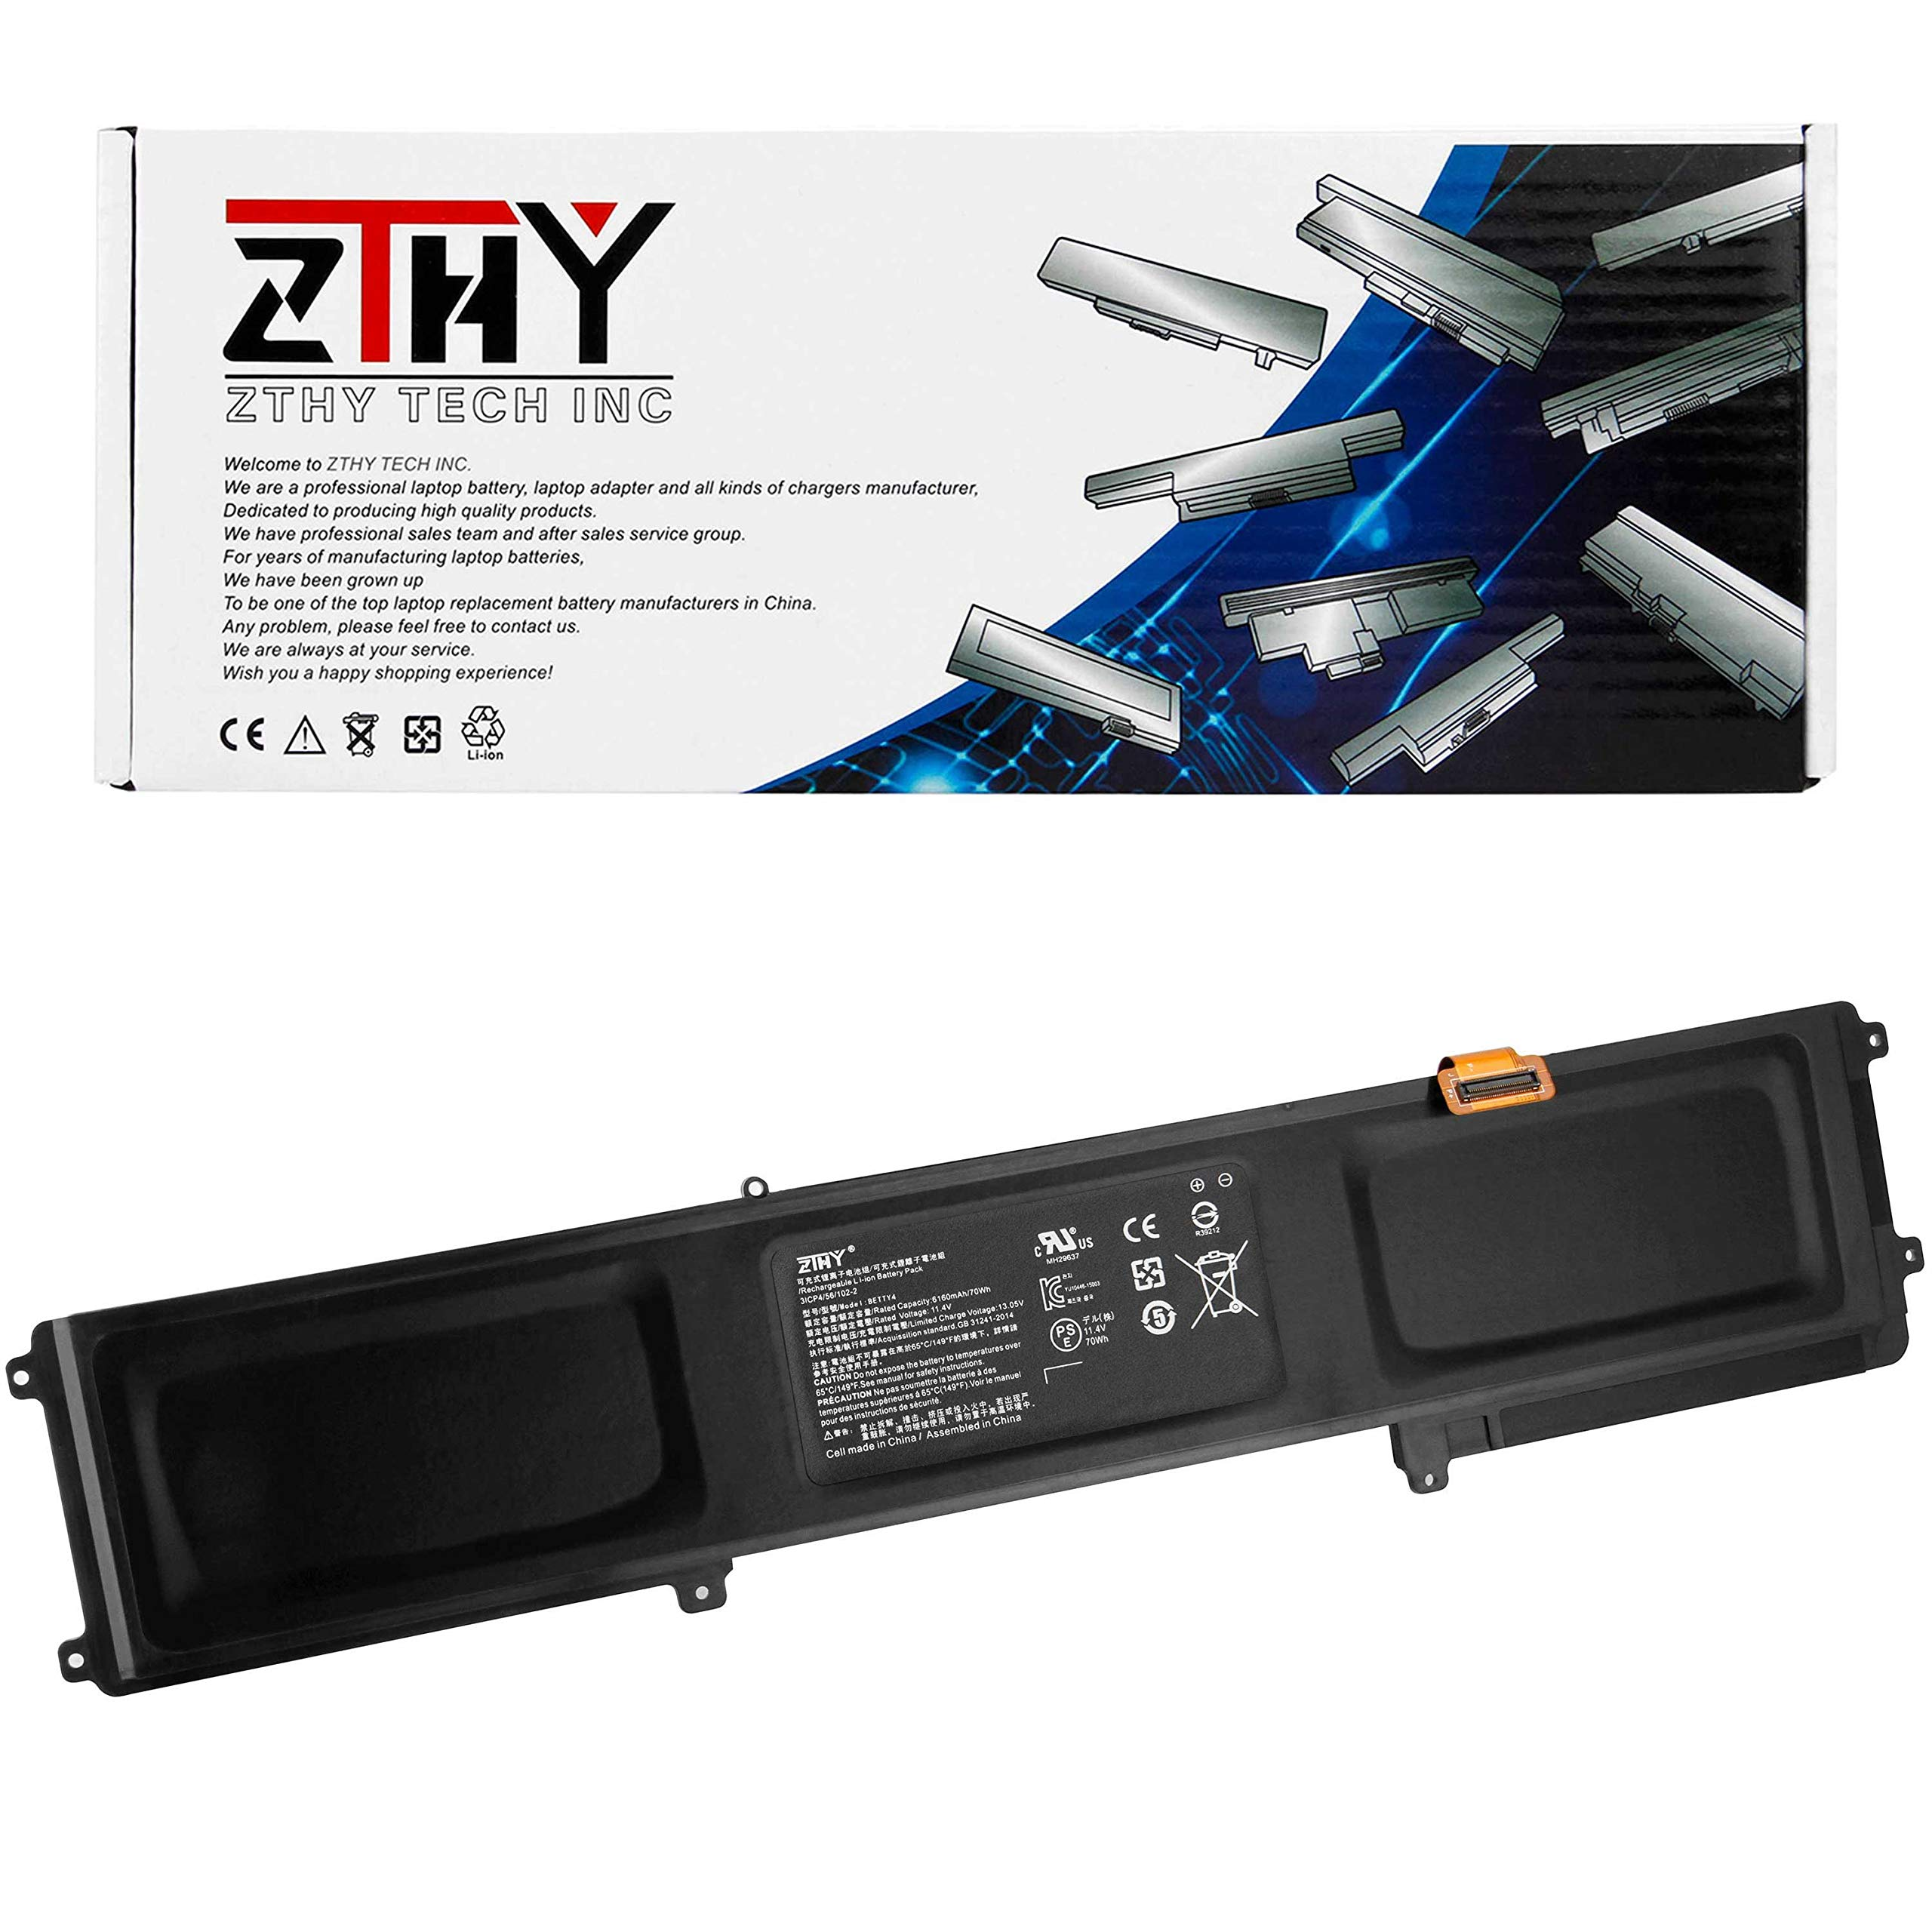 ZTHY BETTY4 Laptop Battery Replacement for Razer Blade 2016 14'' V2 Series 3ICP4/56/102-2 RZ09-0195 RZ09-0165 RZ09-01953E72 RZ09-01953E71 RZ09-01953W52 CN-B-1-BETTY4-73K-06472 70Wh 11.4V 6160mAh